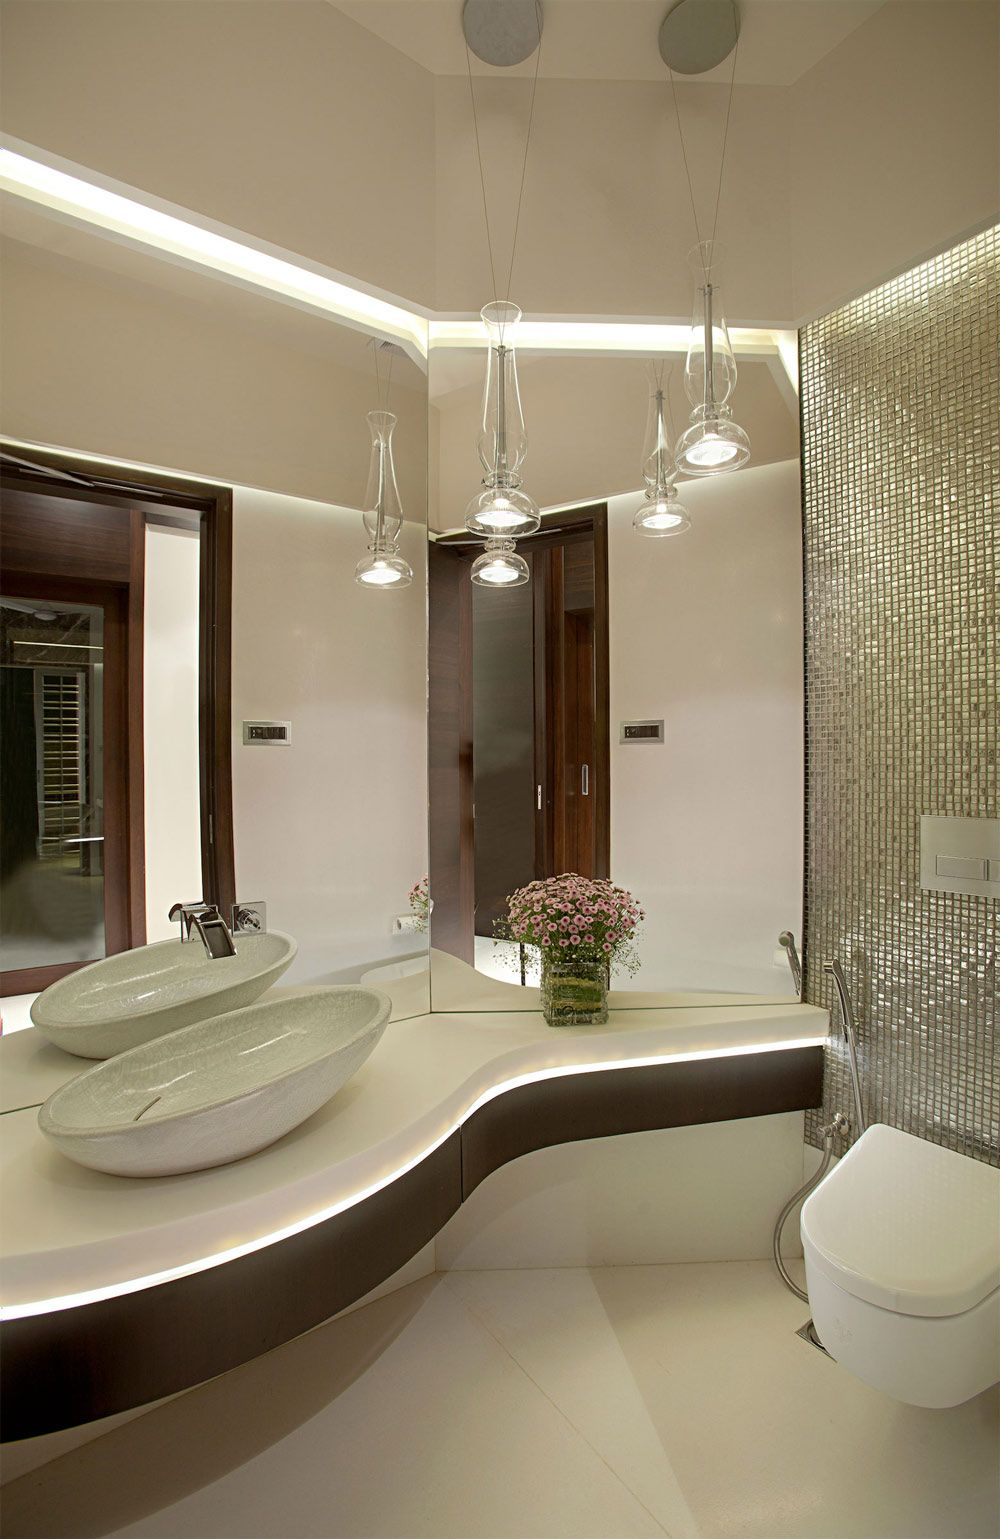 Bathroom apartment by the beach in mumbai india by zz architects